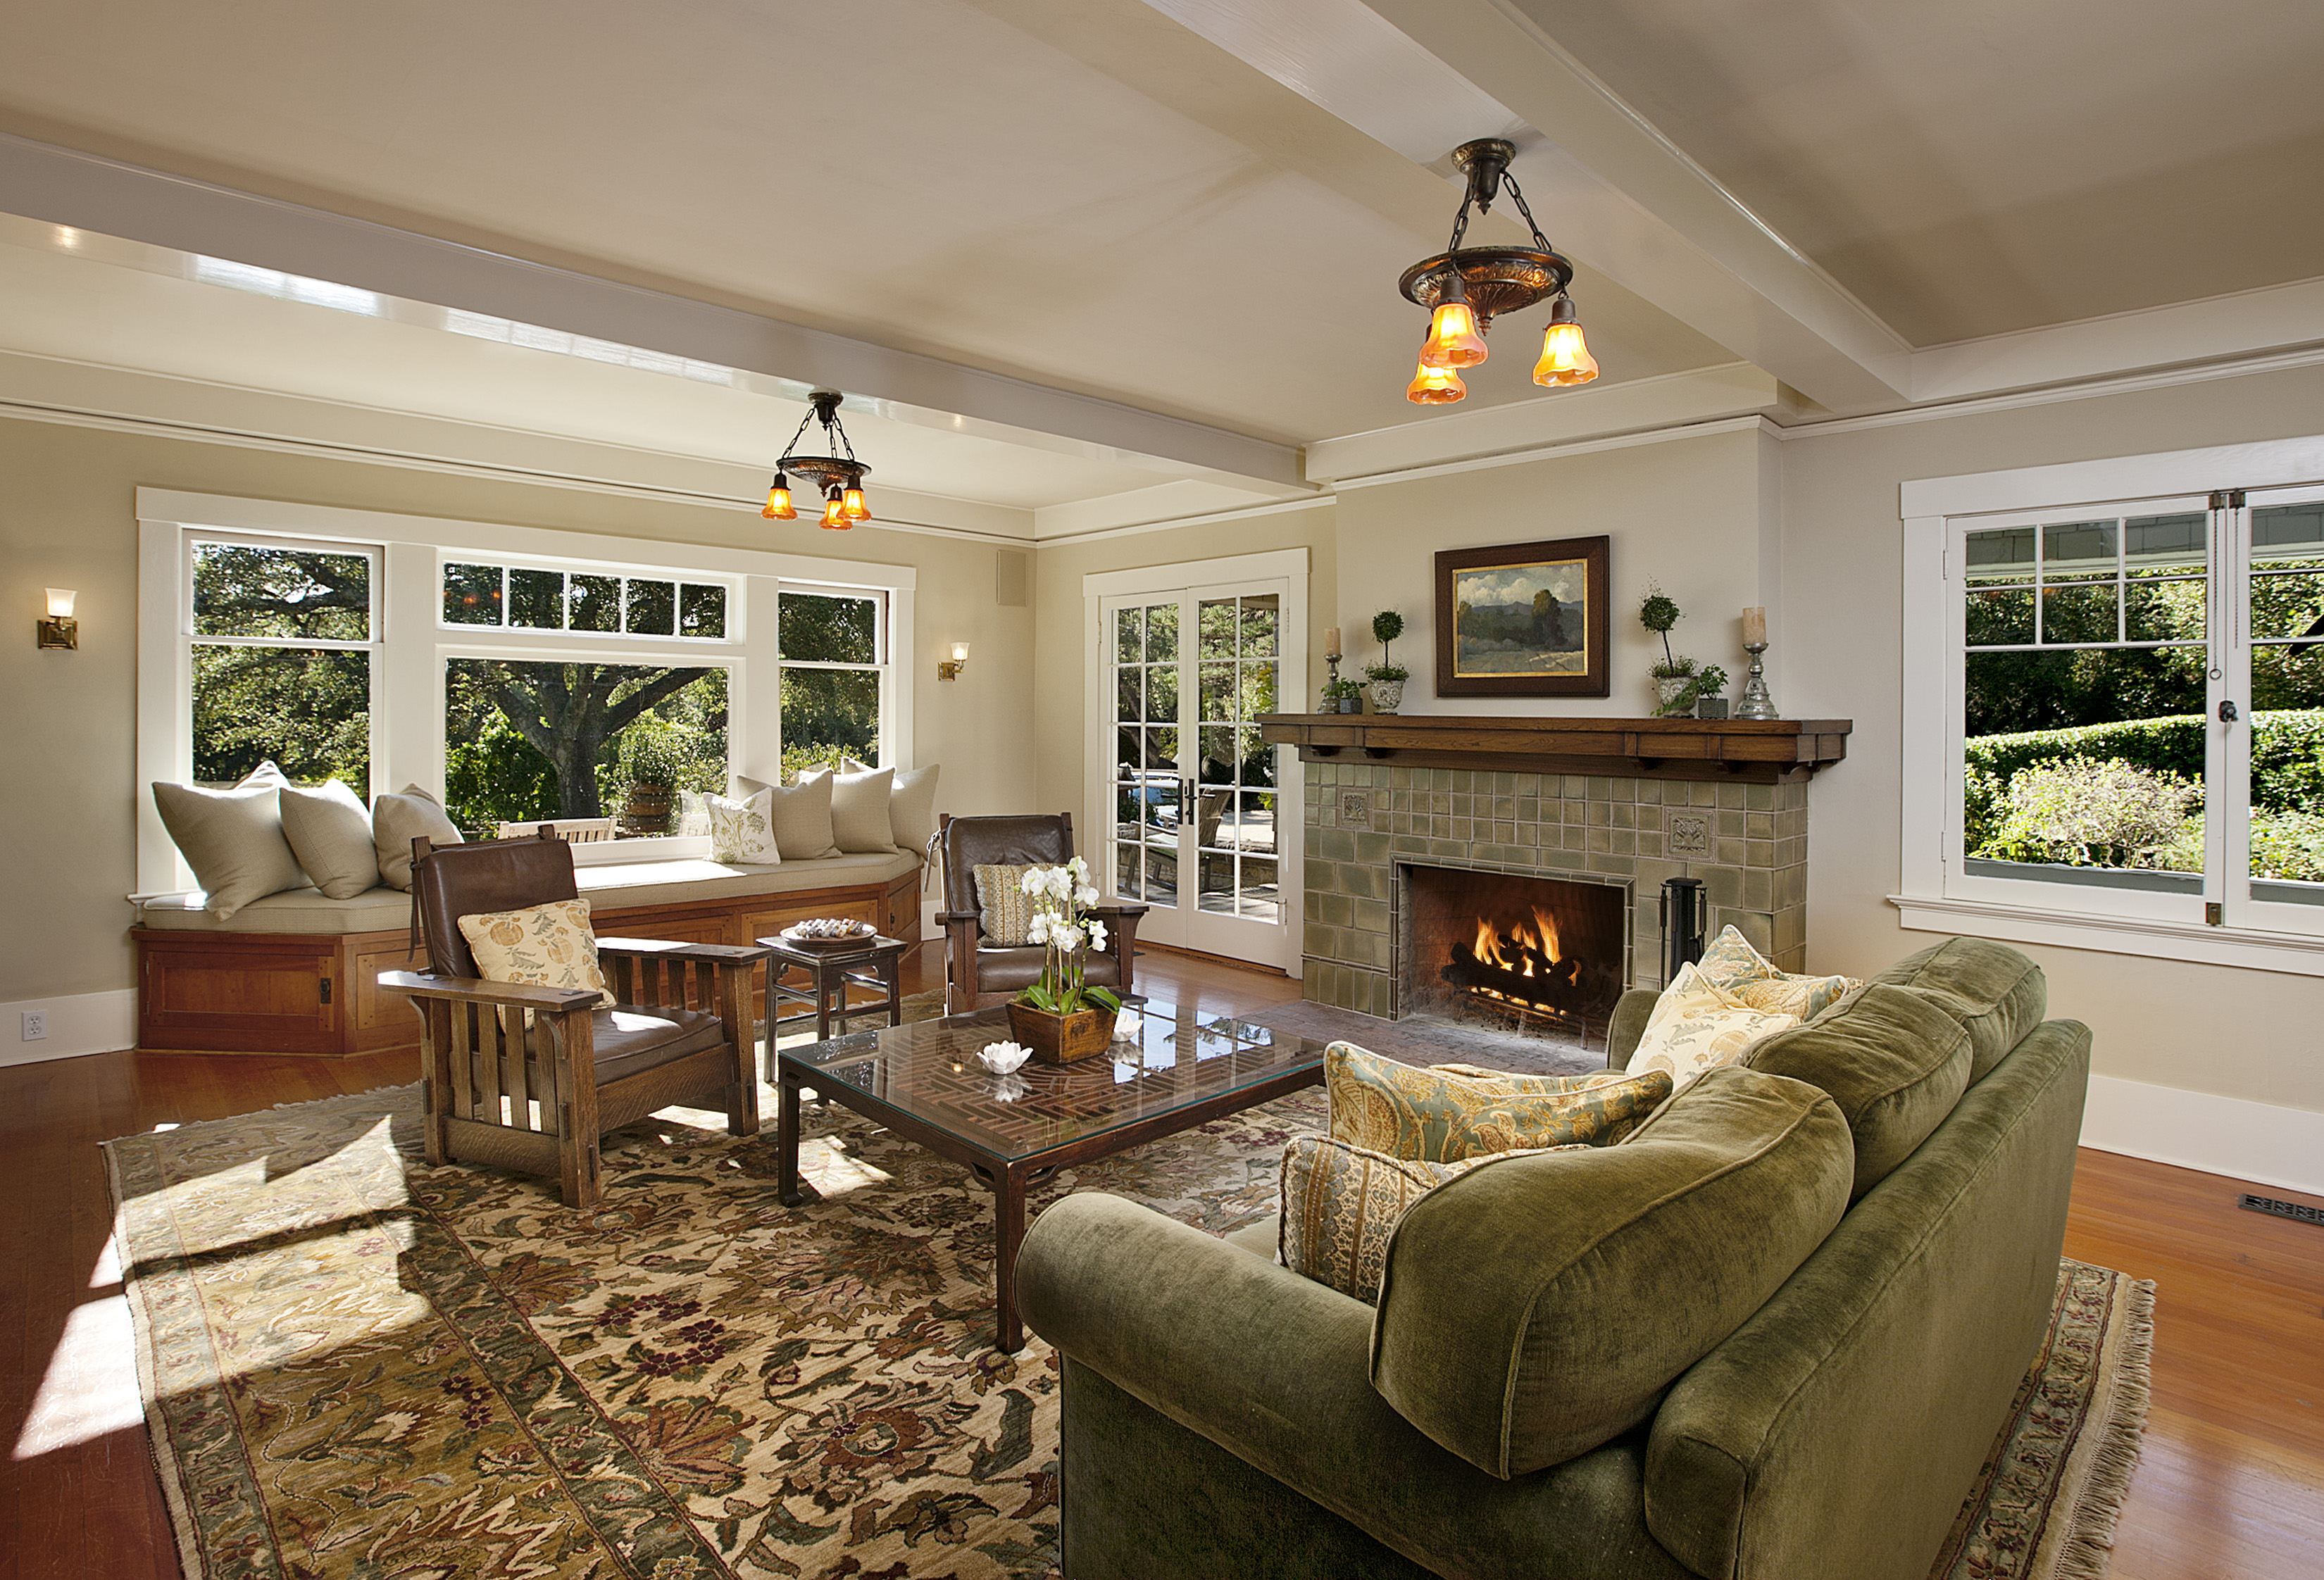 Popular home styles for 2012 montecito real estate for Home architecture styles